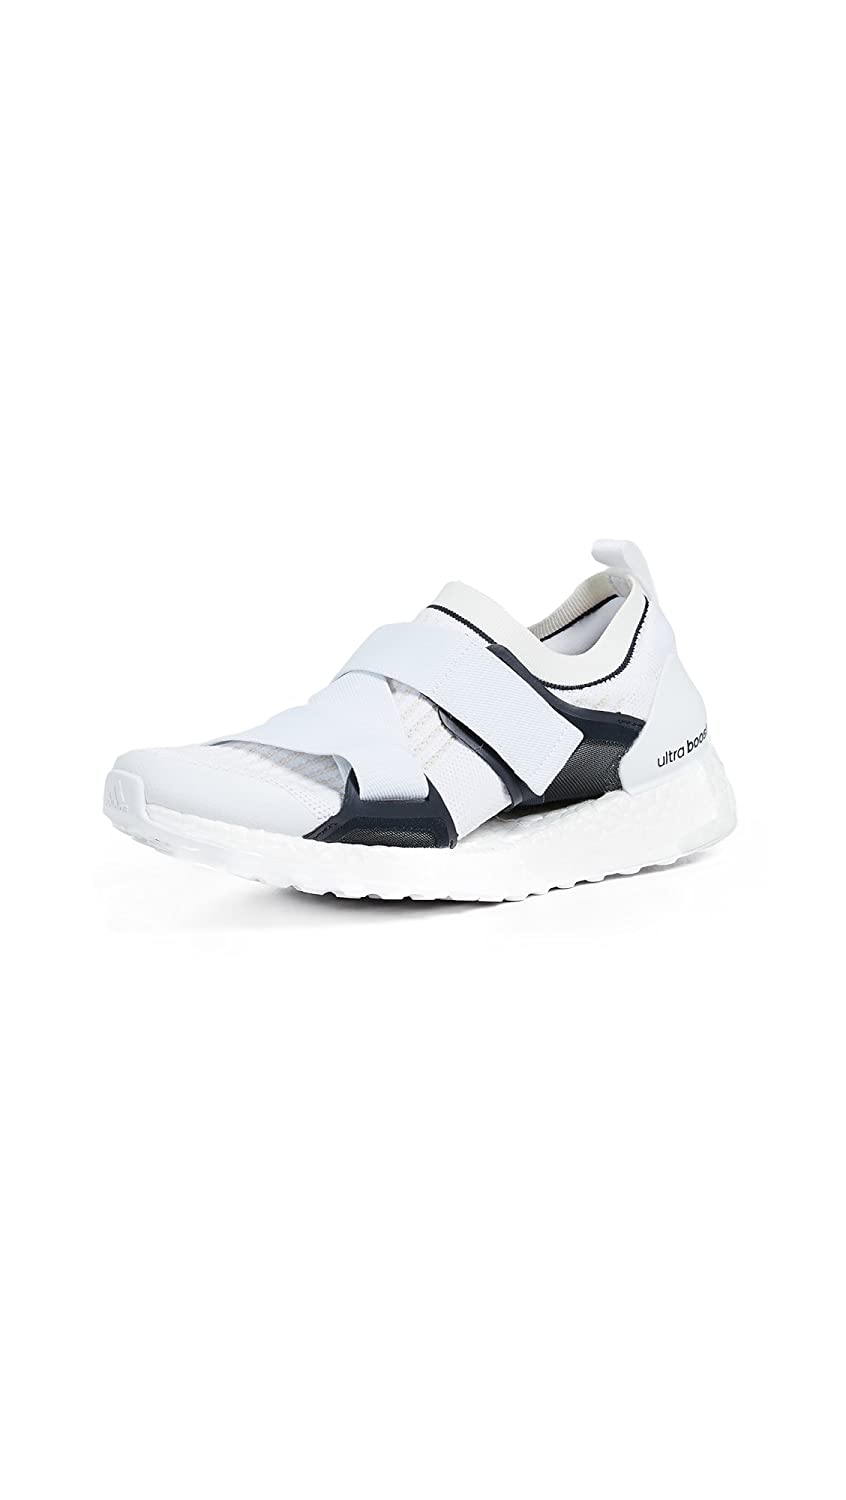 adidas by Stella McCartney Women's Ultra Boost X Sneakers B07BHN68KZ 6 UK|White/Chalk White/Night Grey